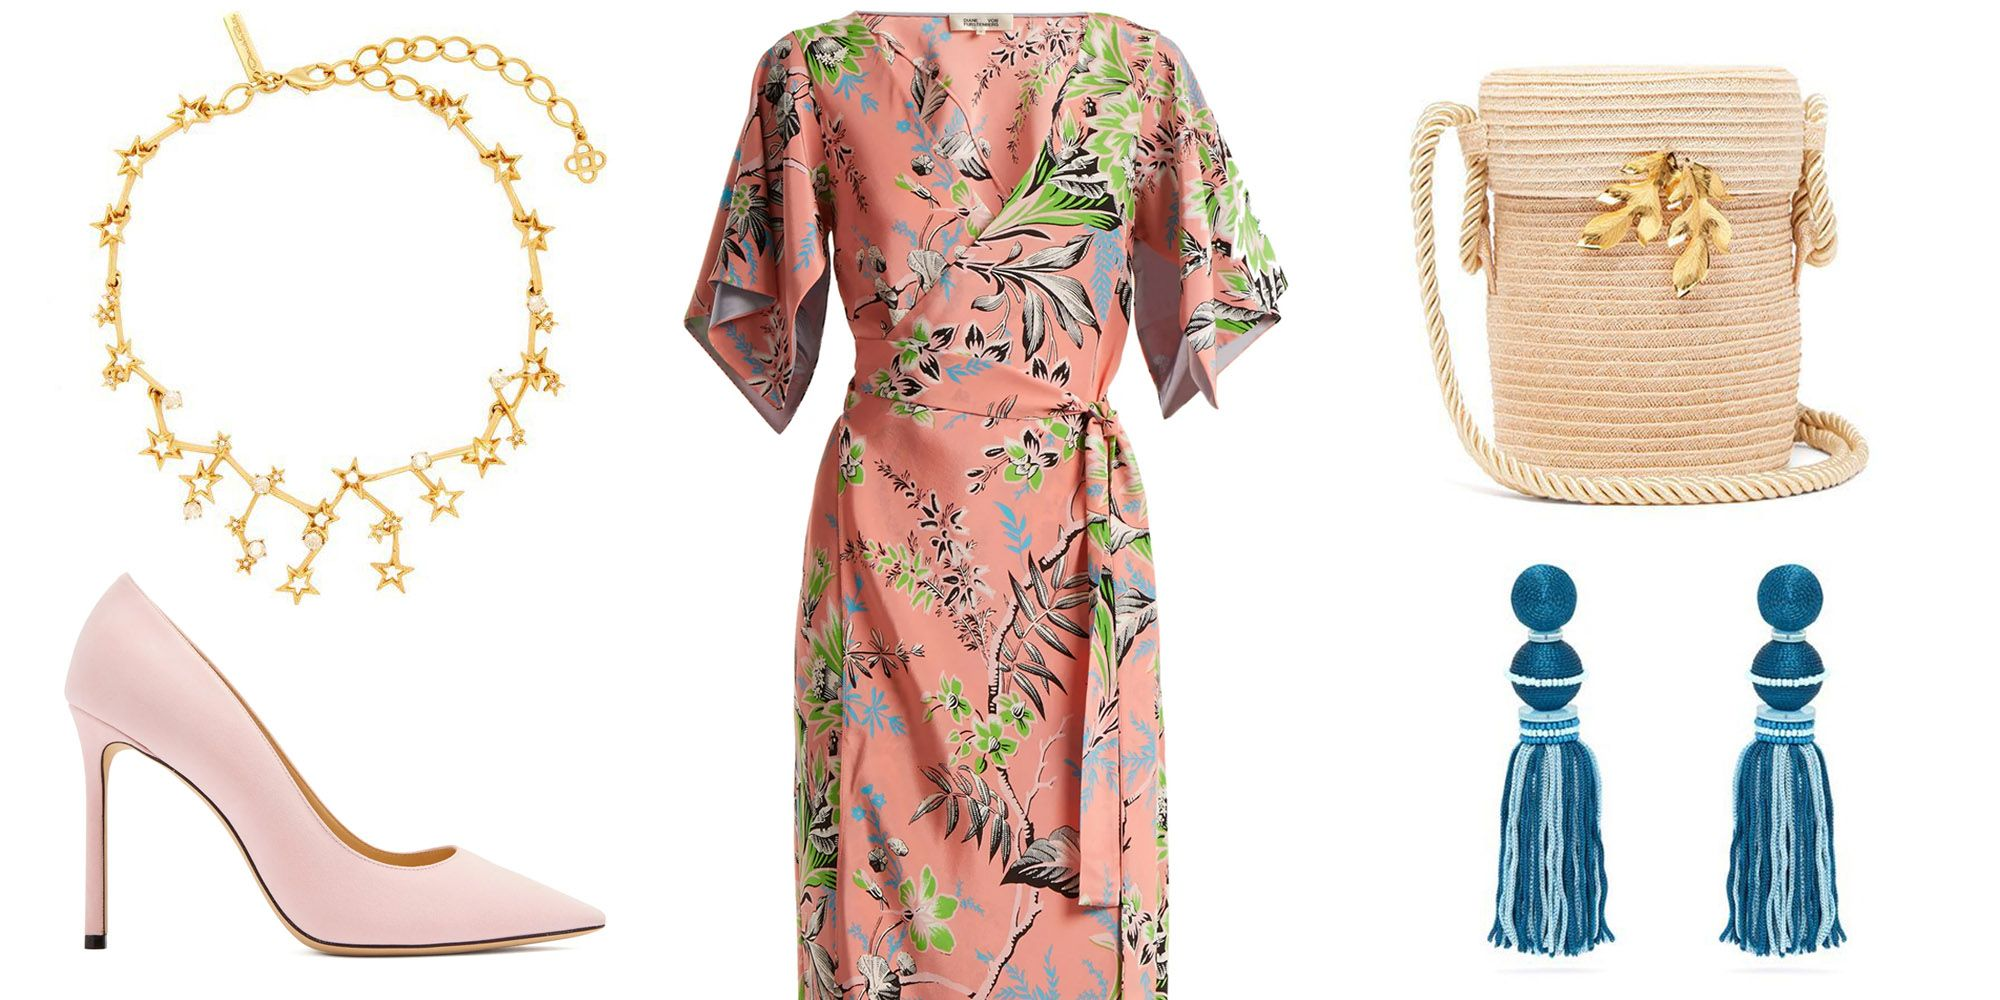 Diane Von Furstenberg Wrap Dresses and Oscar de la Renta Earrings Are Up to 70% Off Right Now